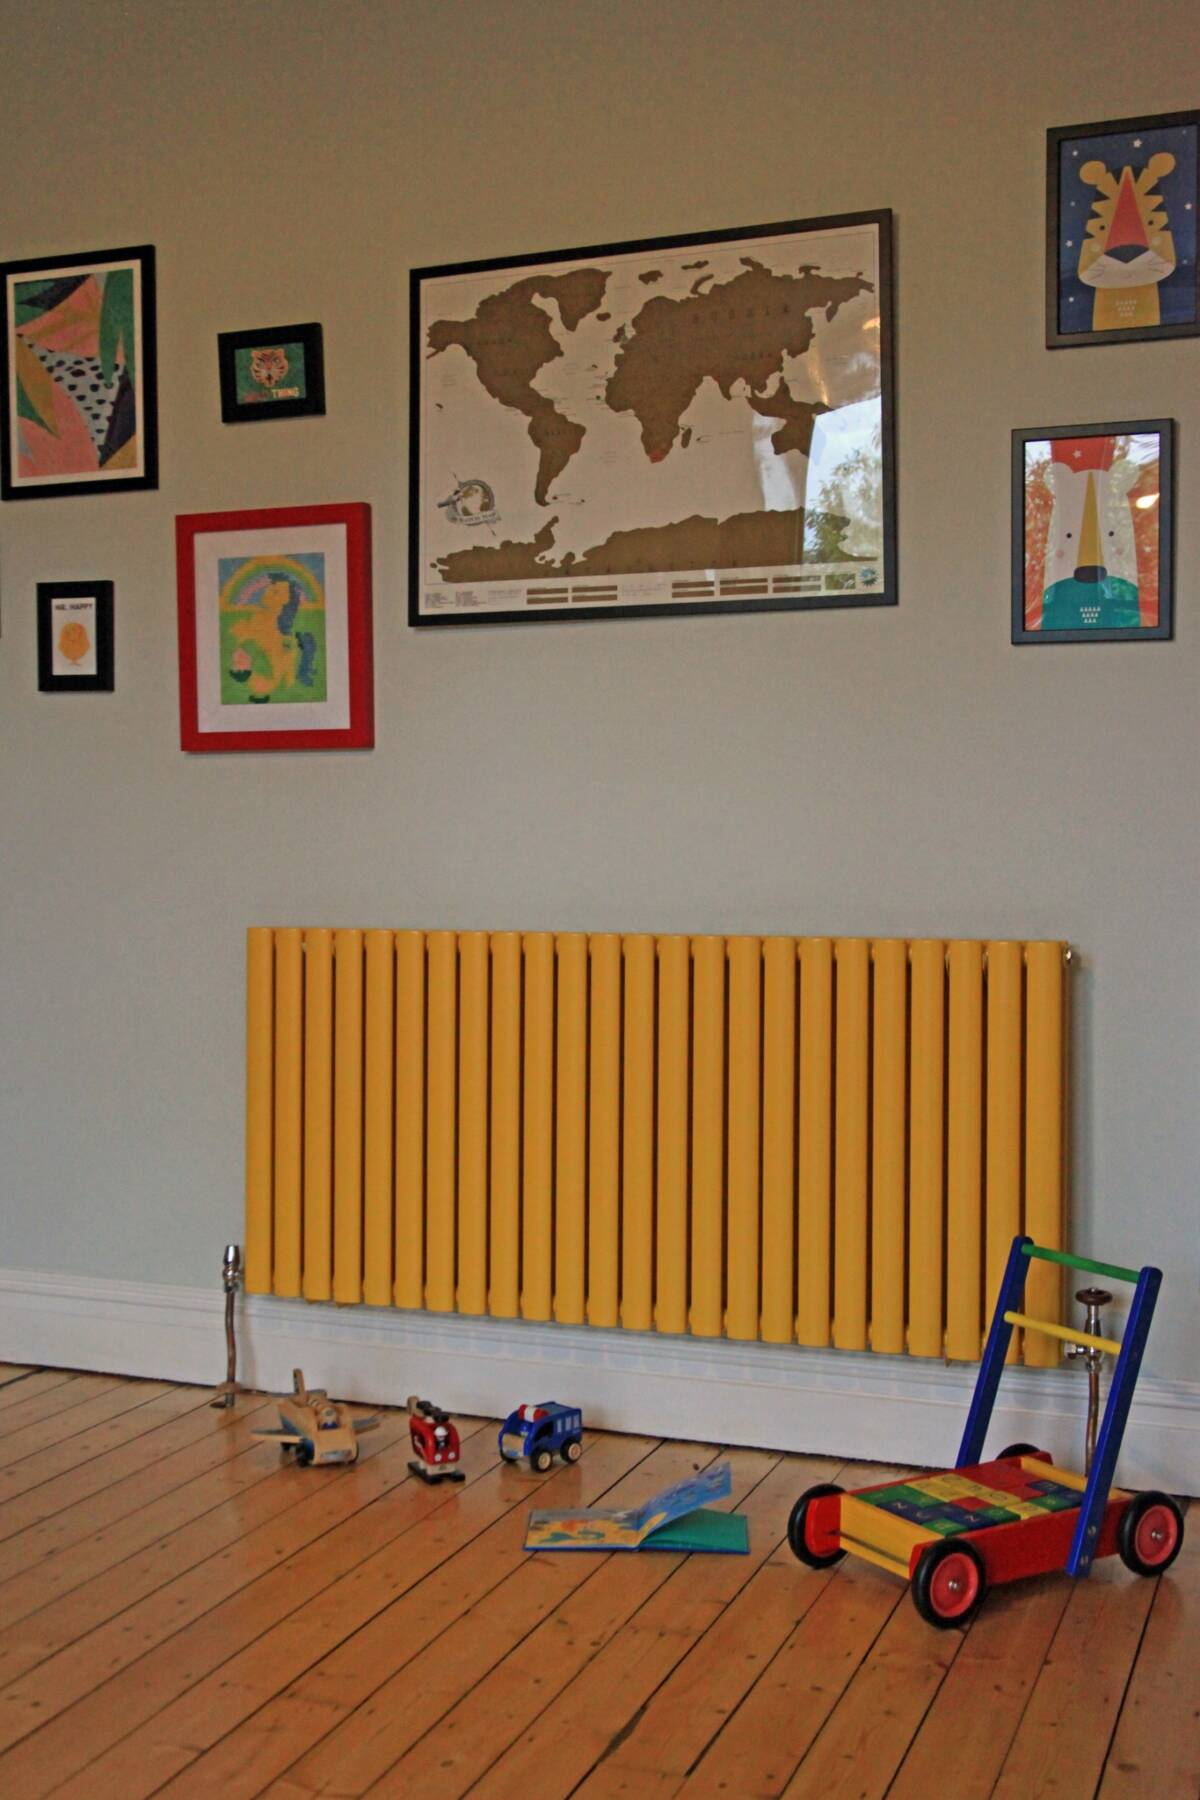 yellow radiator in a playroom with toys on the floor